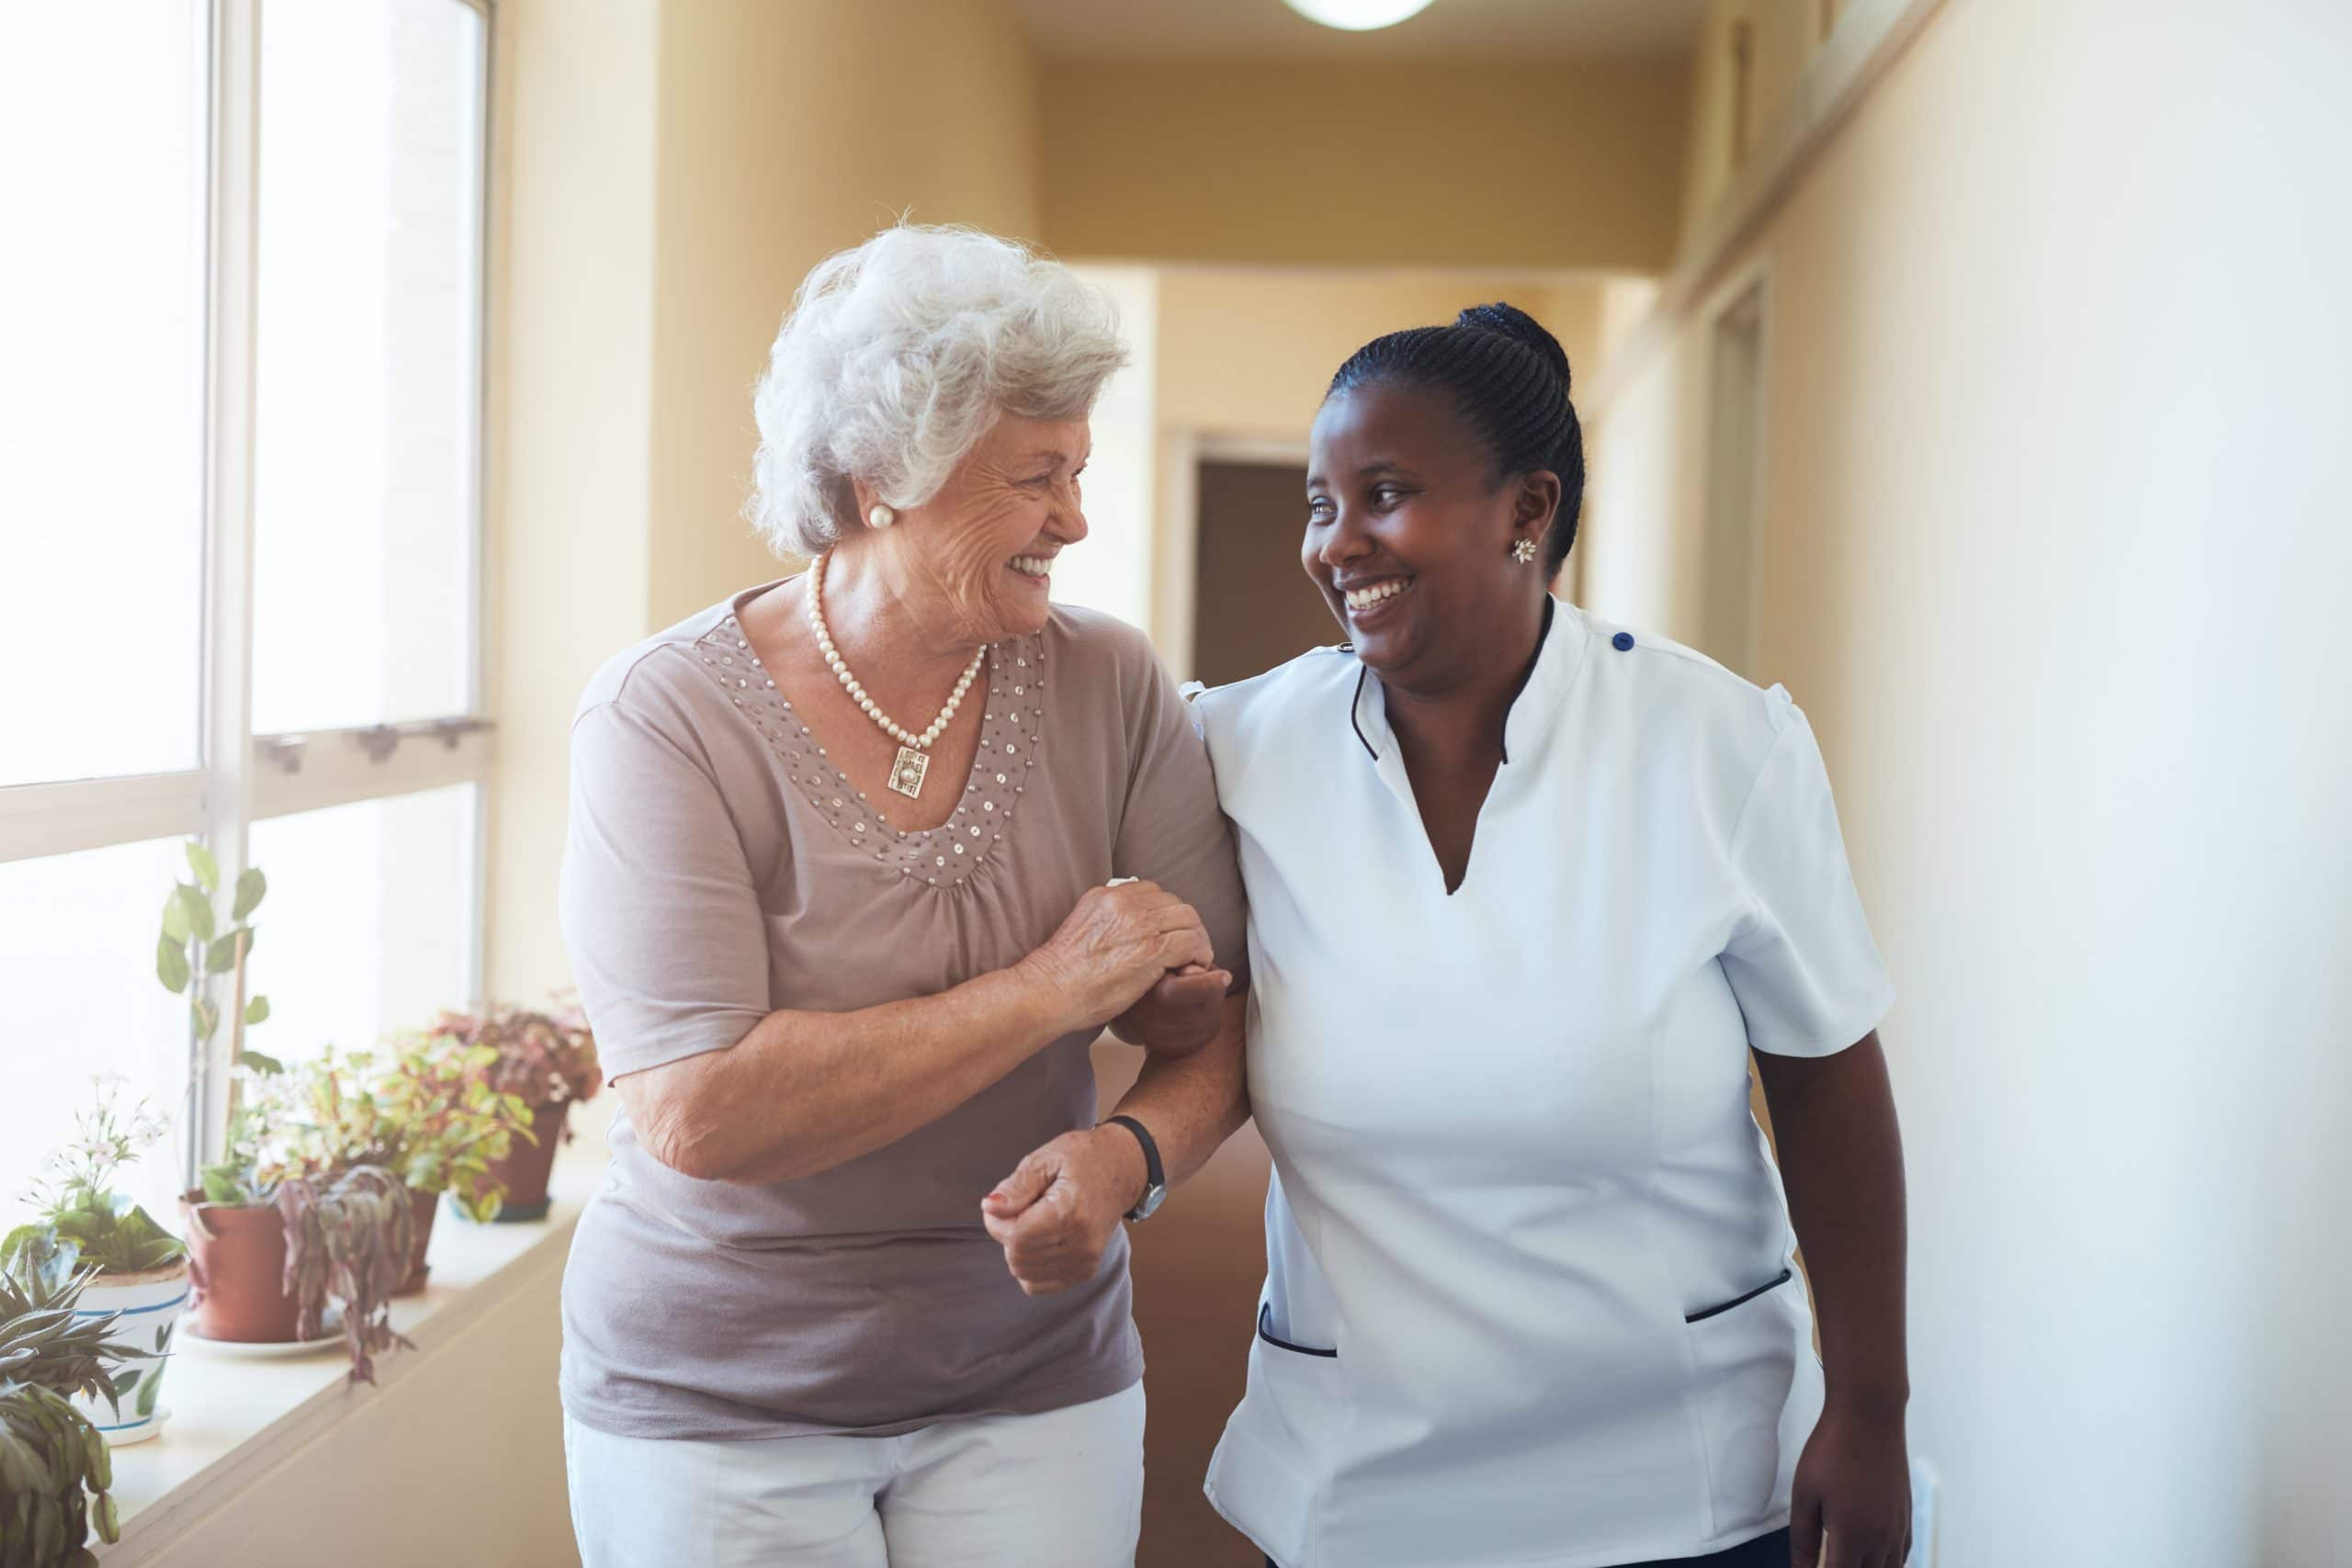 Smiling home caregiver and senior woman walking together through a corridor